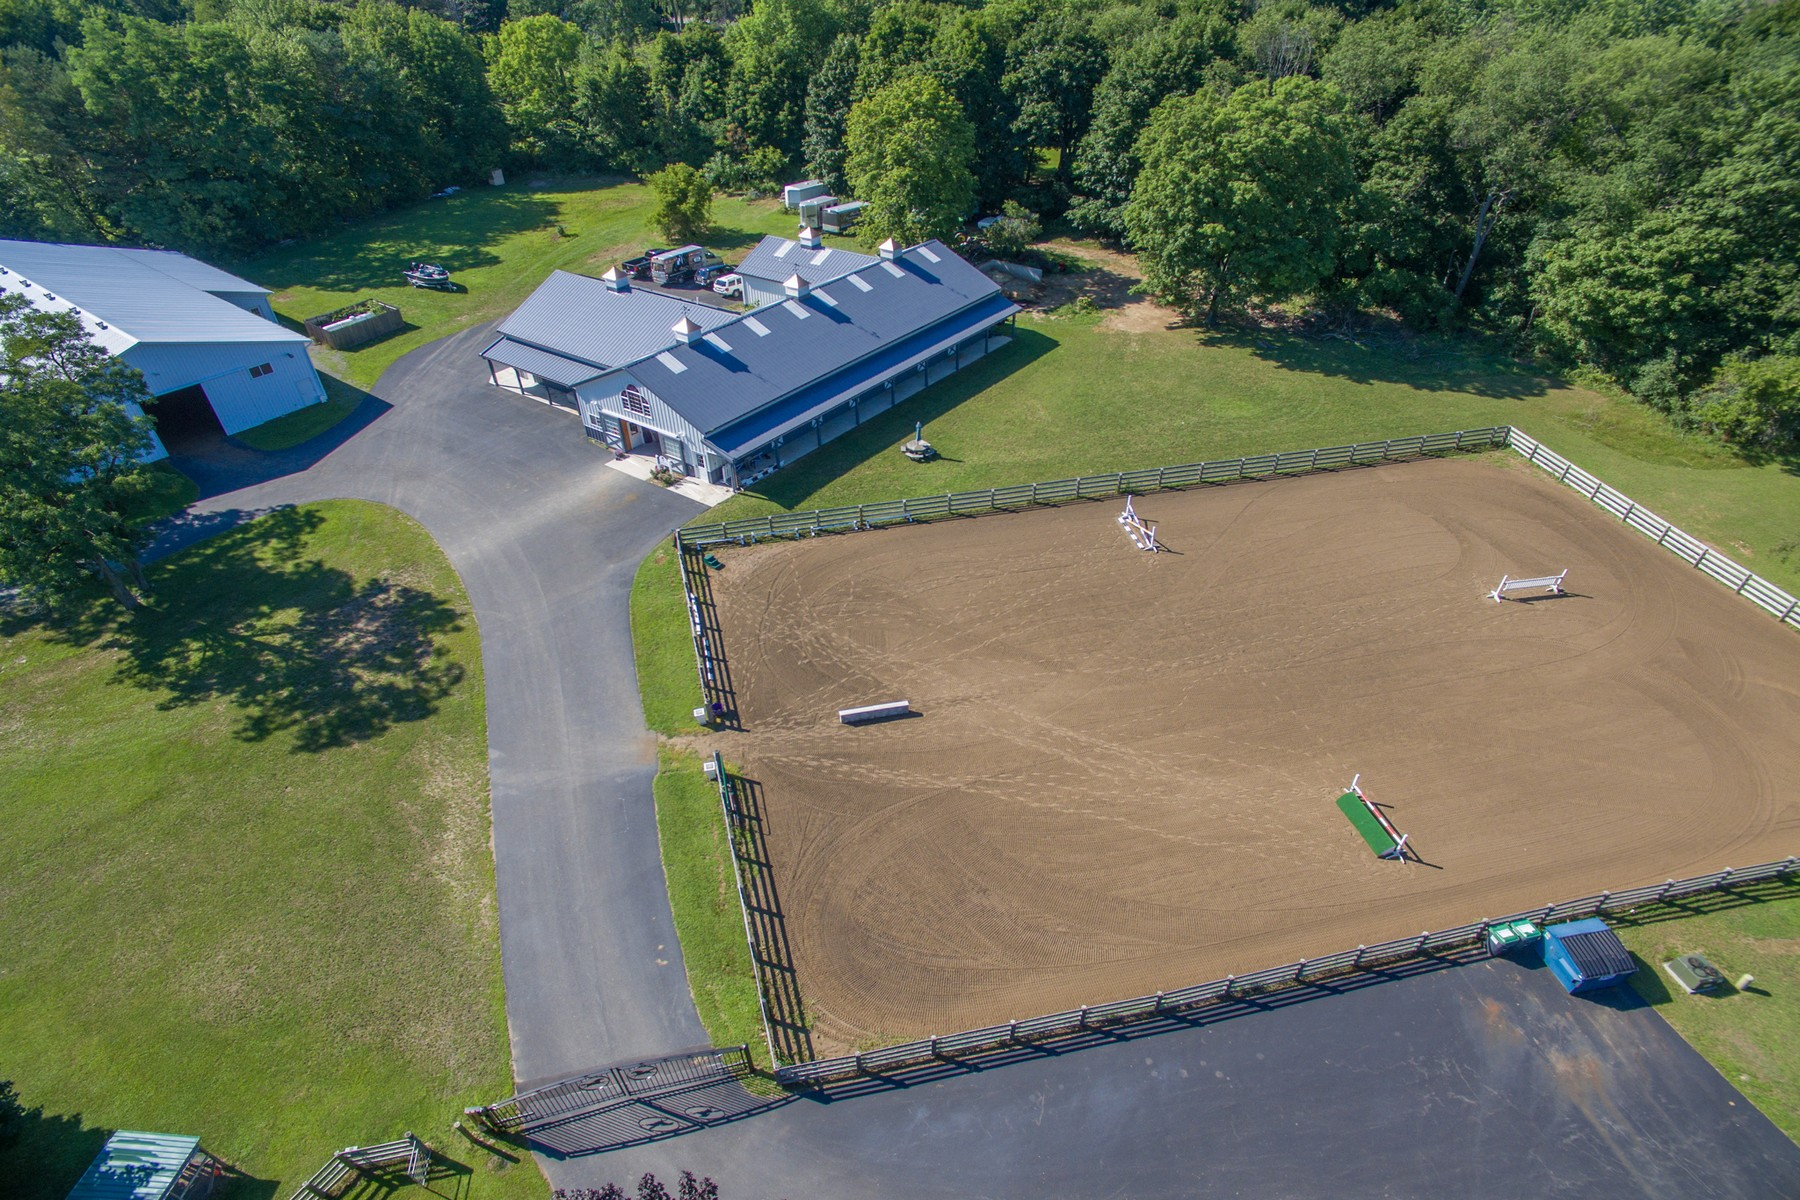 Single Family Home for Sale at Charlton Equestrian 489 Stage Rd Charlton, New York 12019 United States